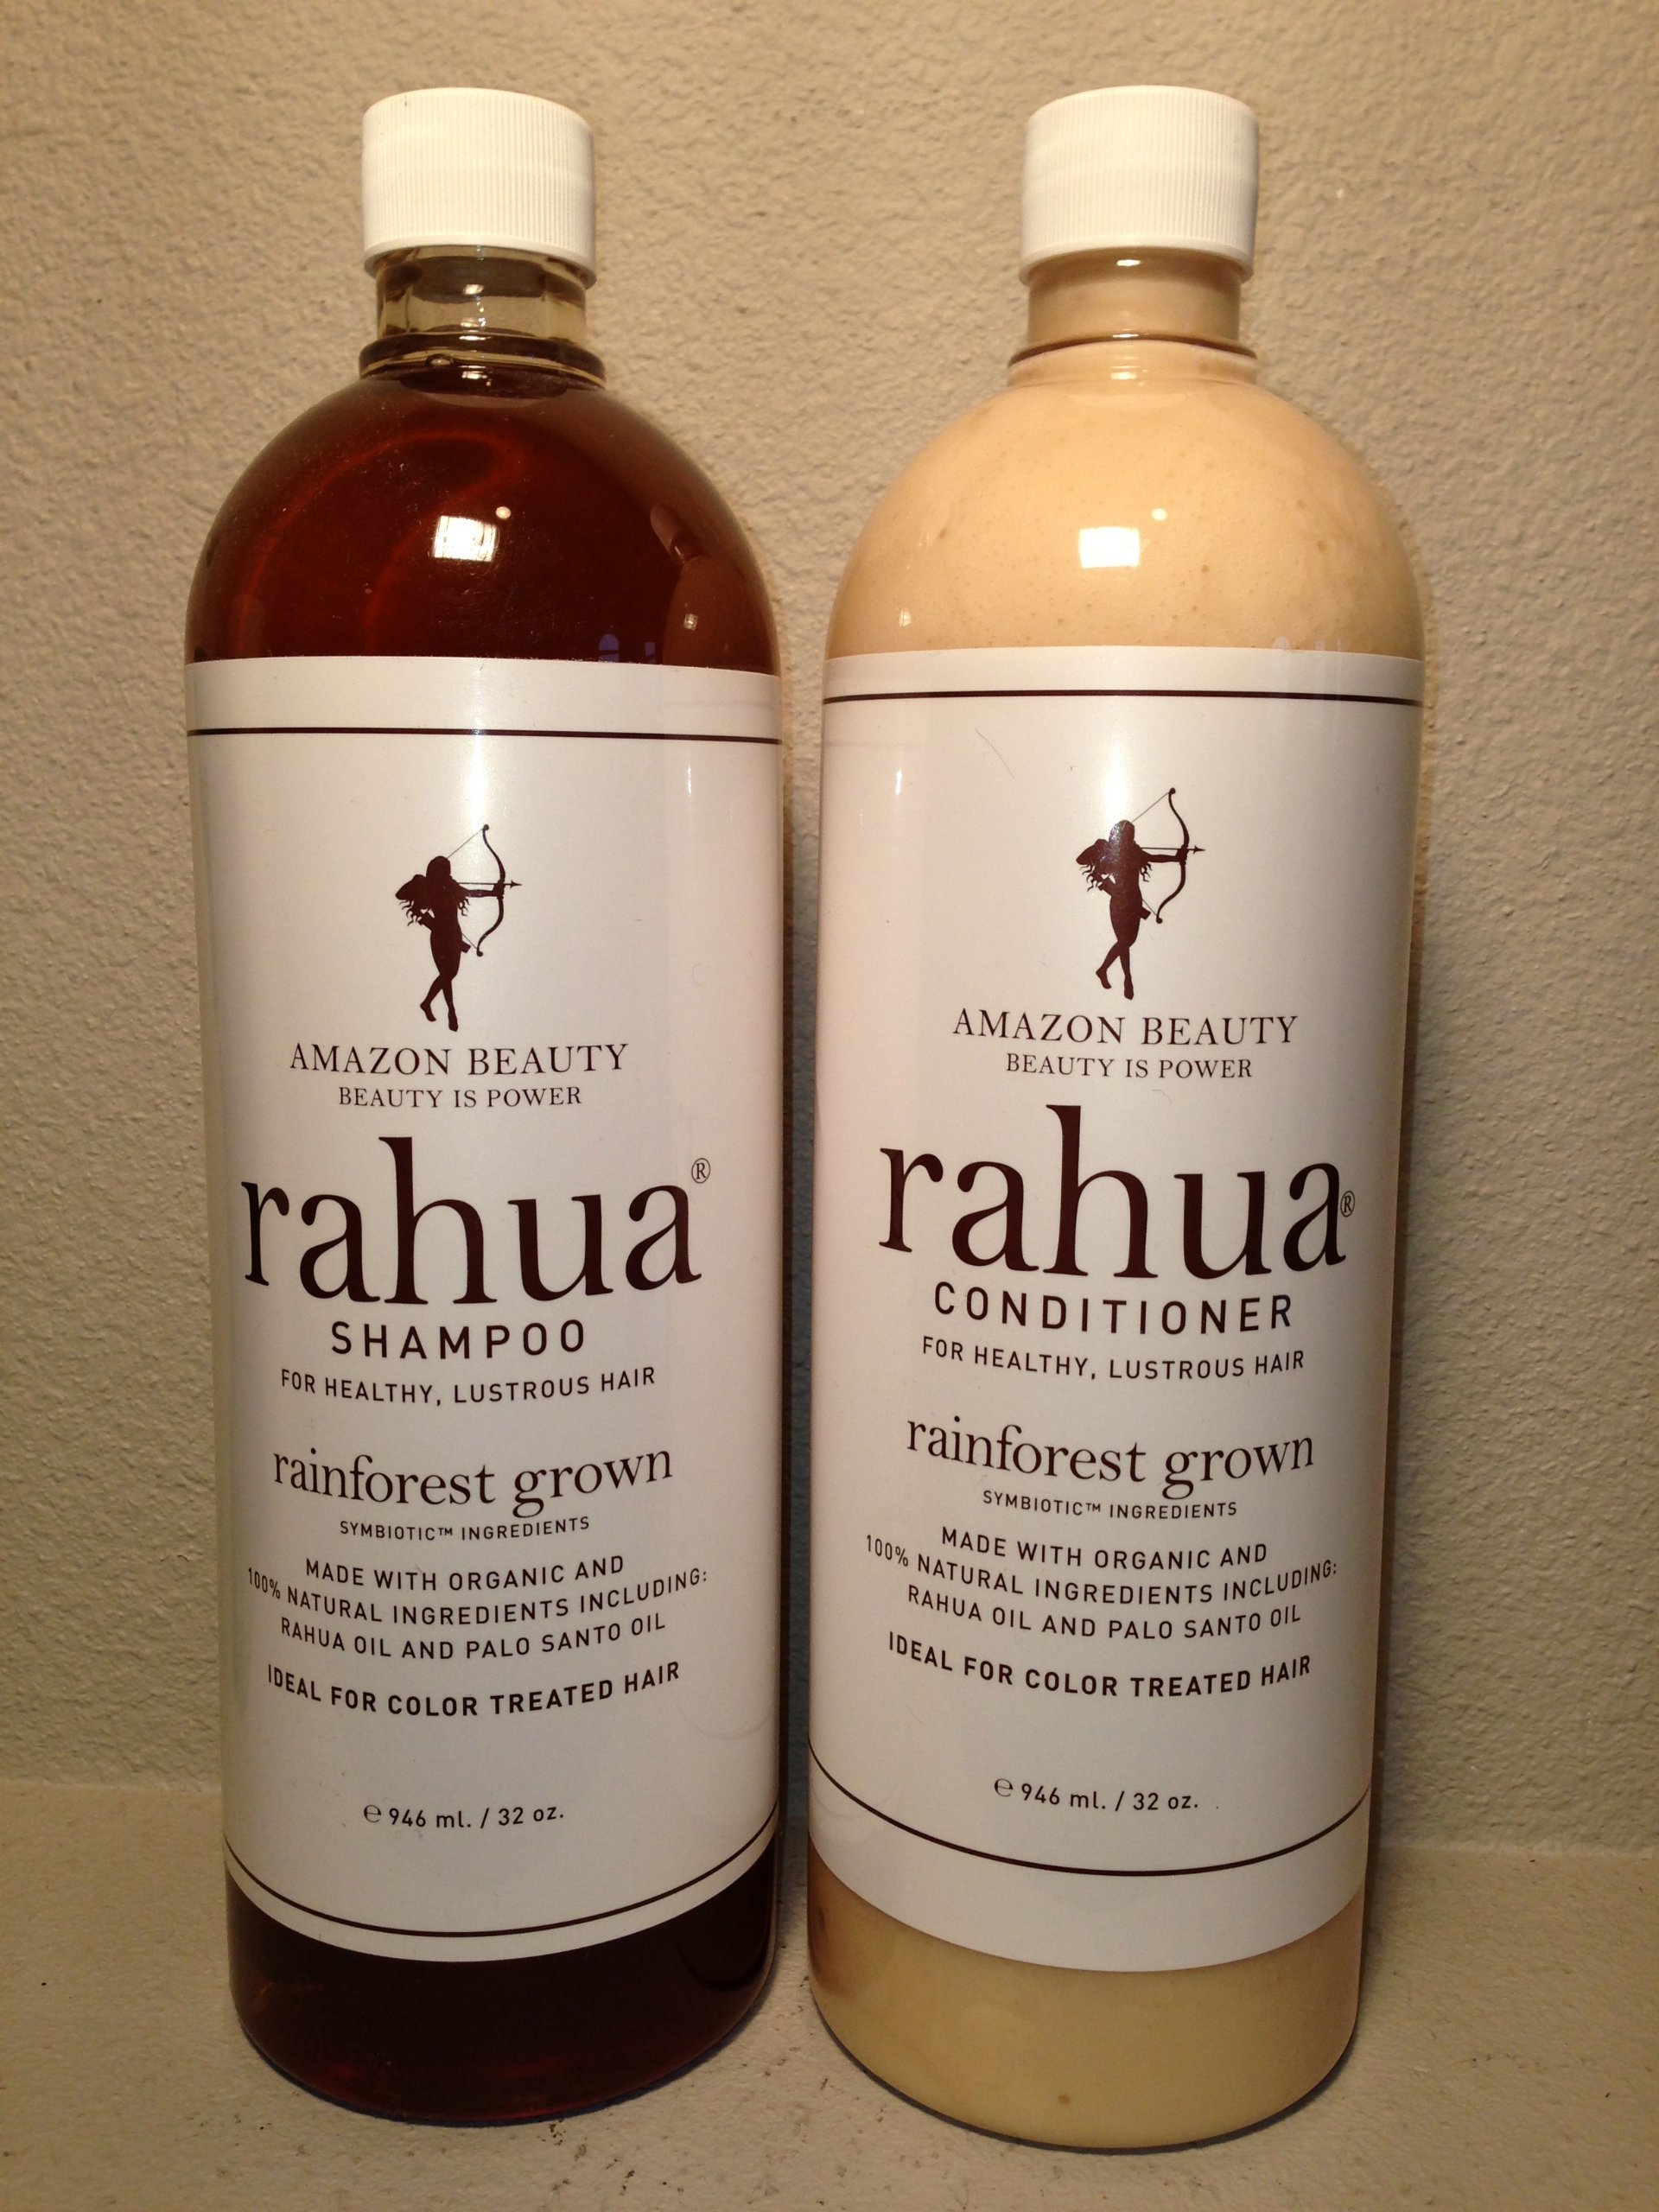 Rahua Shampoo and Conditioner Set 32 oz.